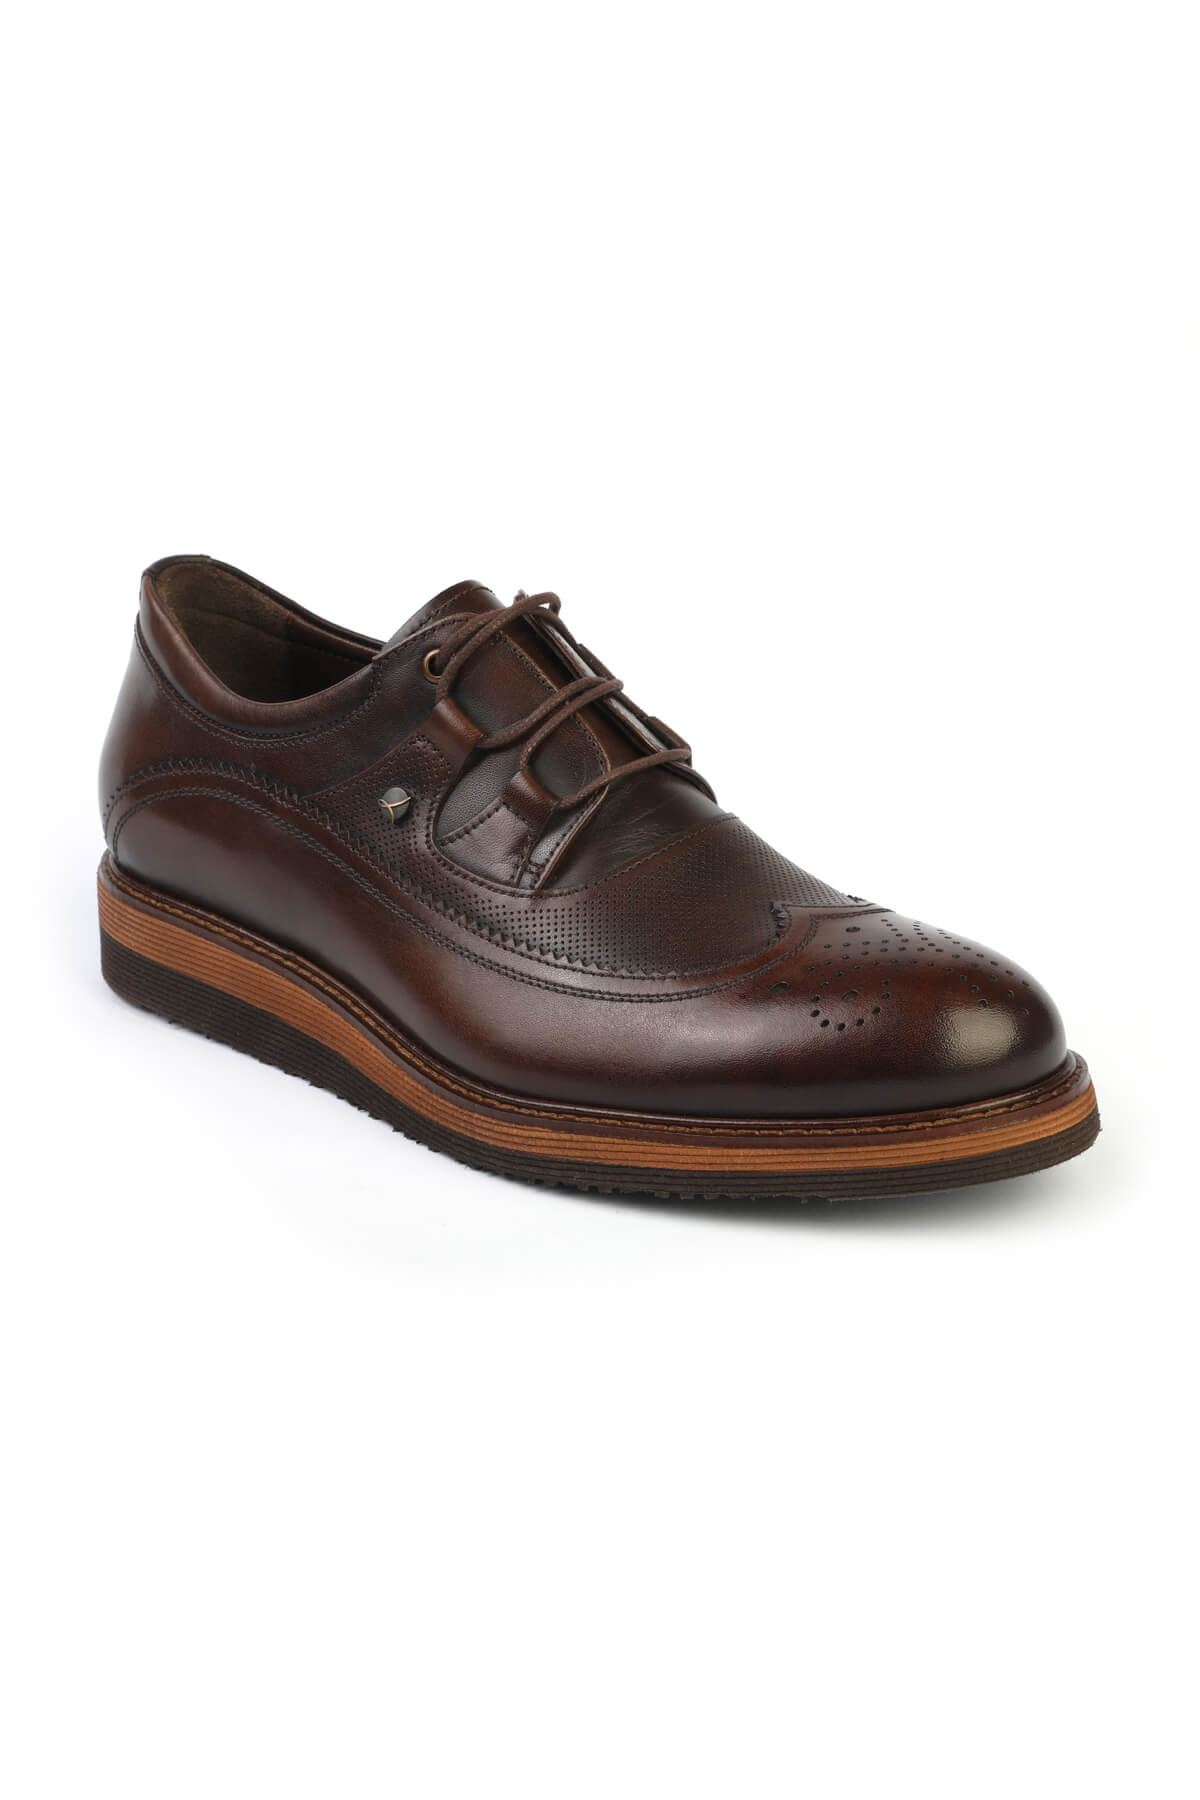 Libero 2902 Brown Oxford Shoes